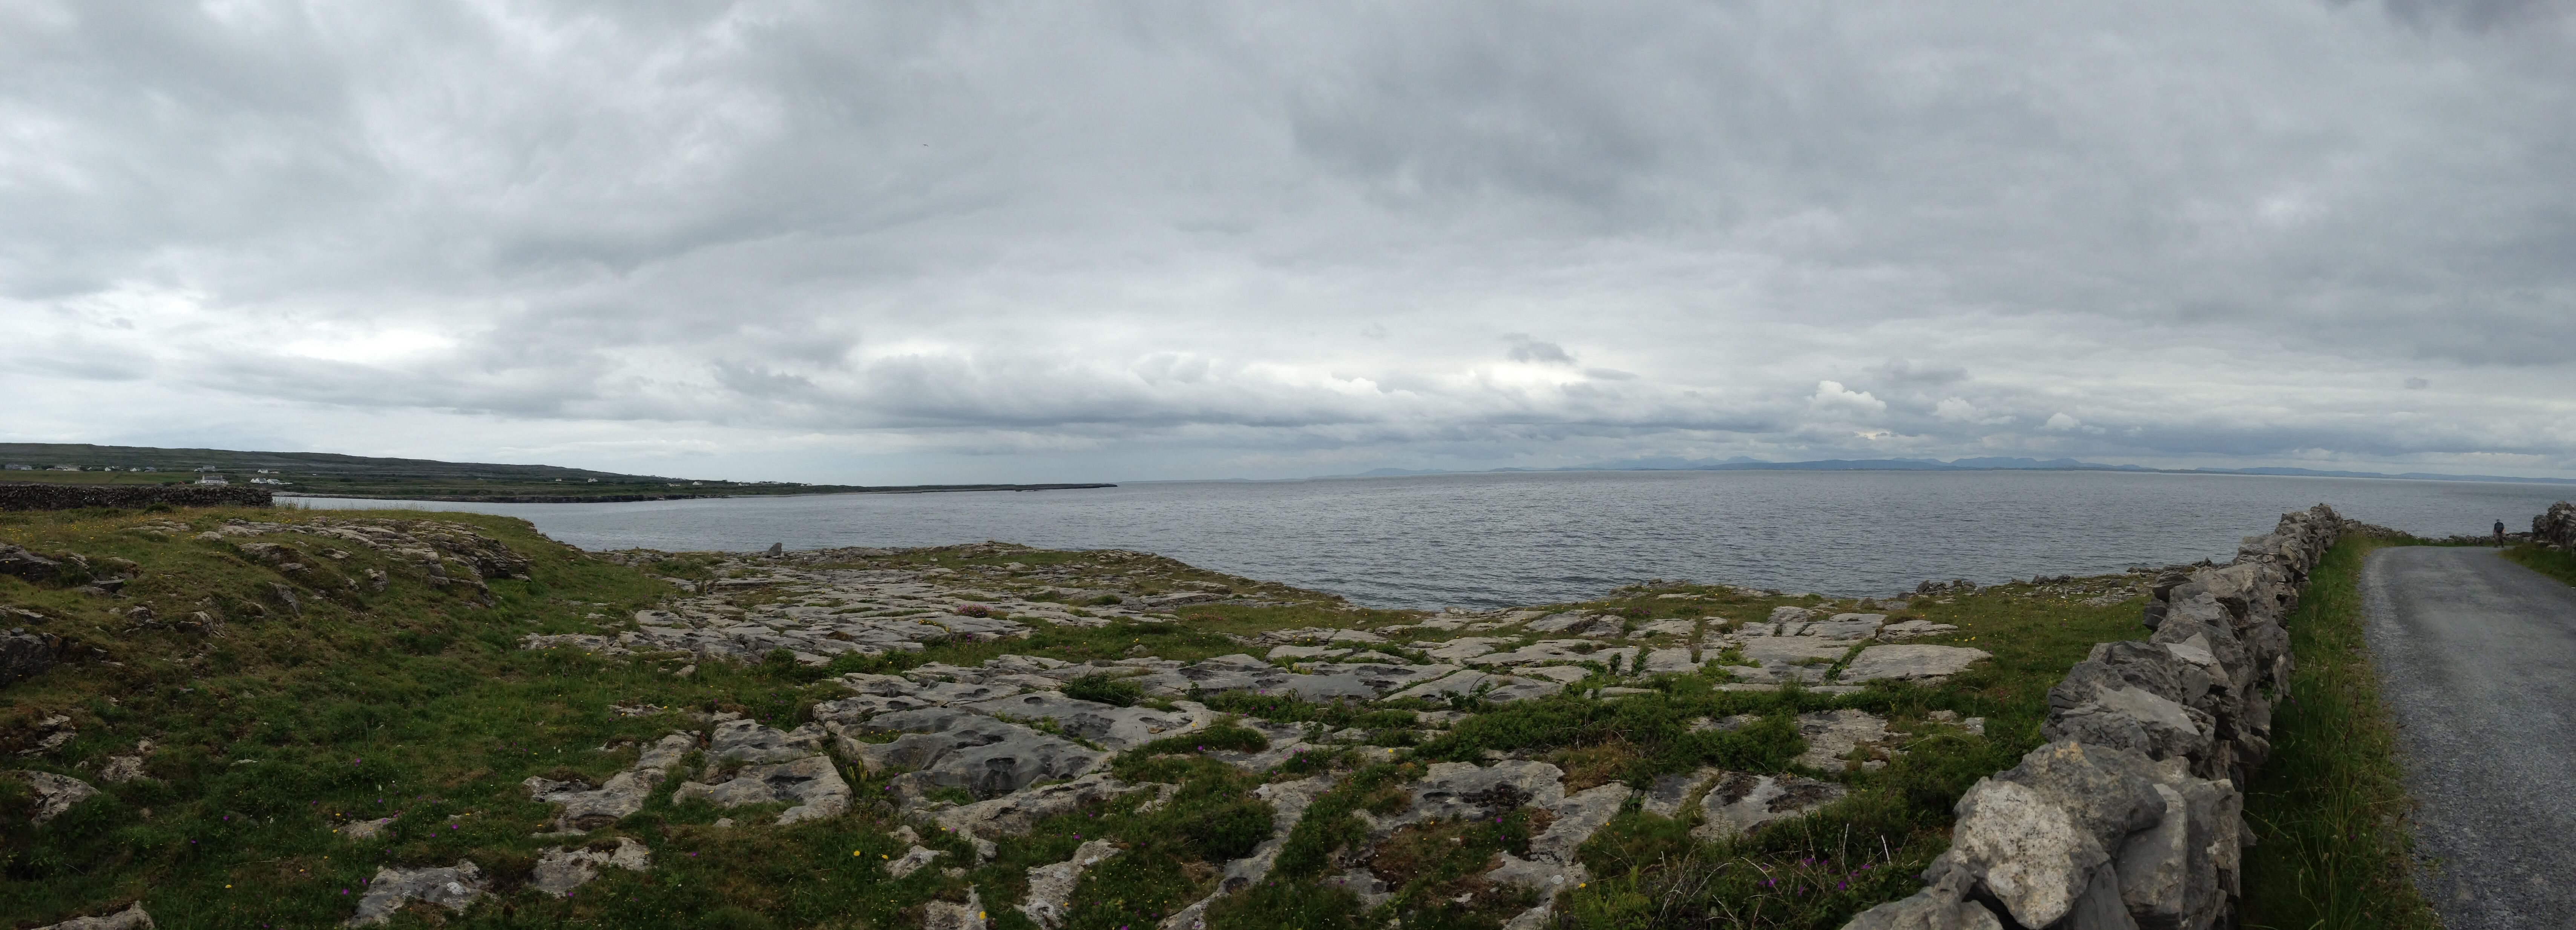 My favorite shot from our trip to Inishmor, the largest of the Aran Islands.